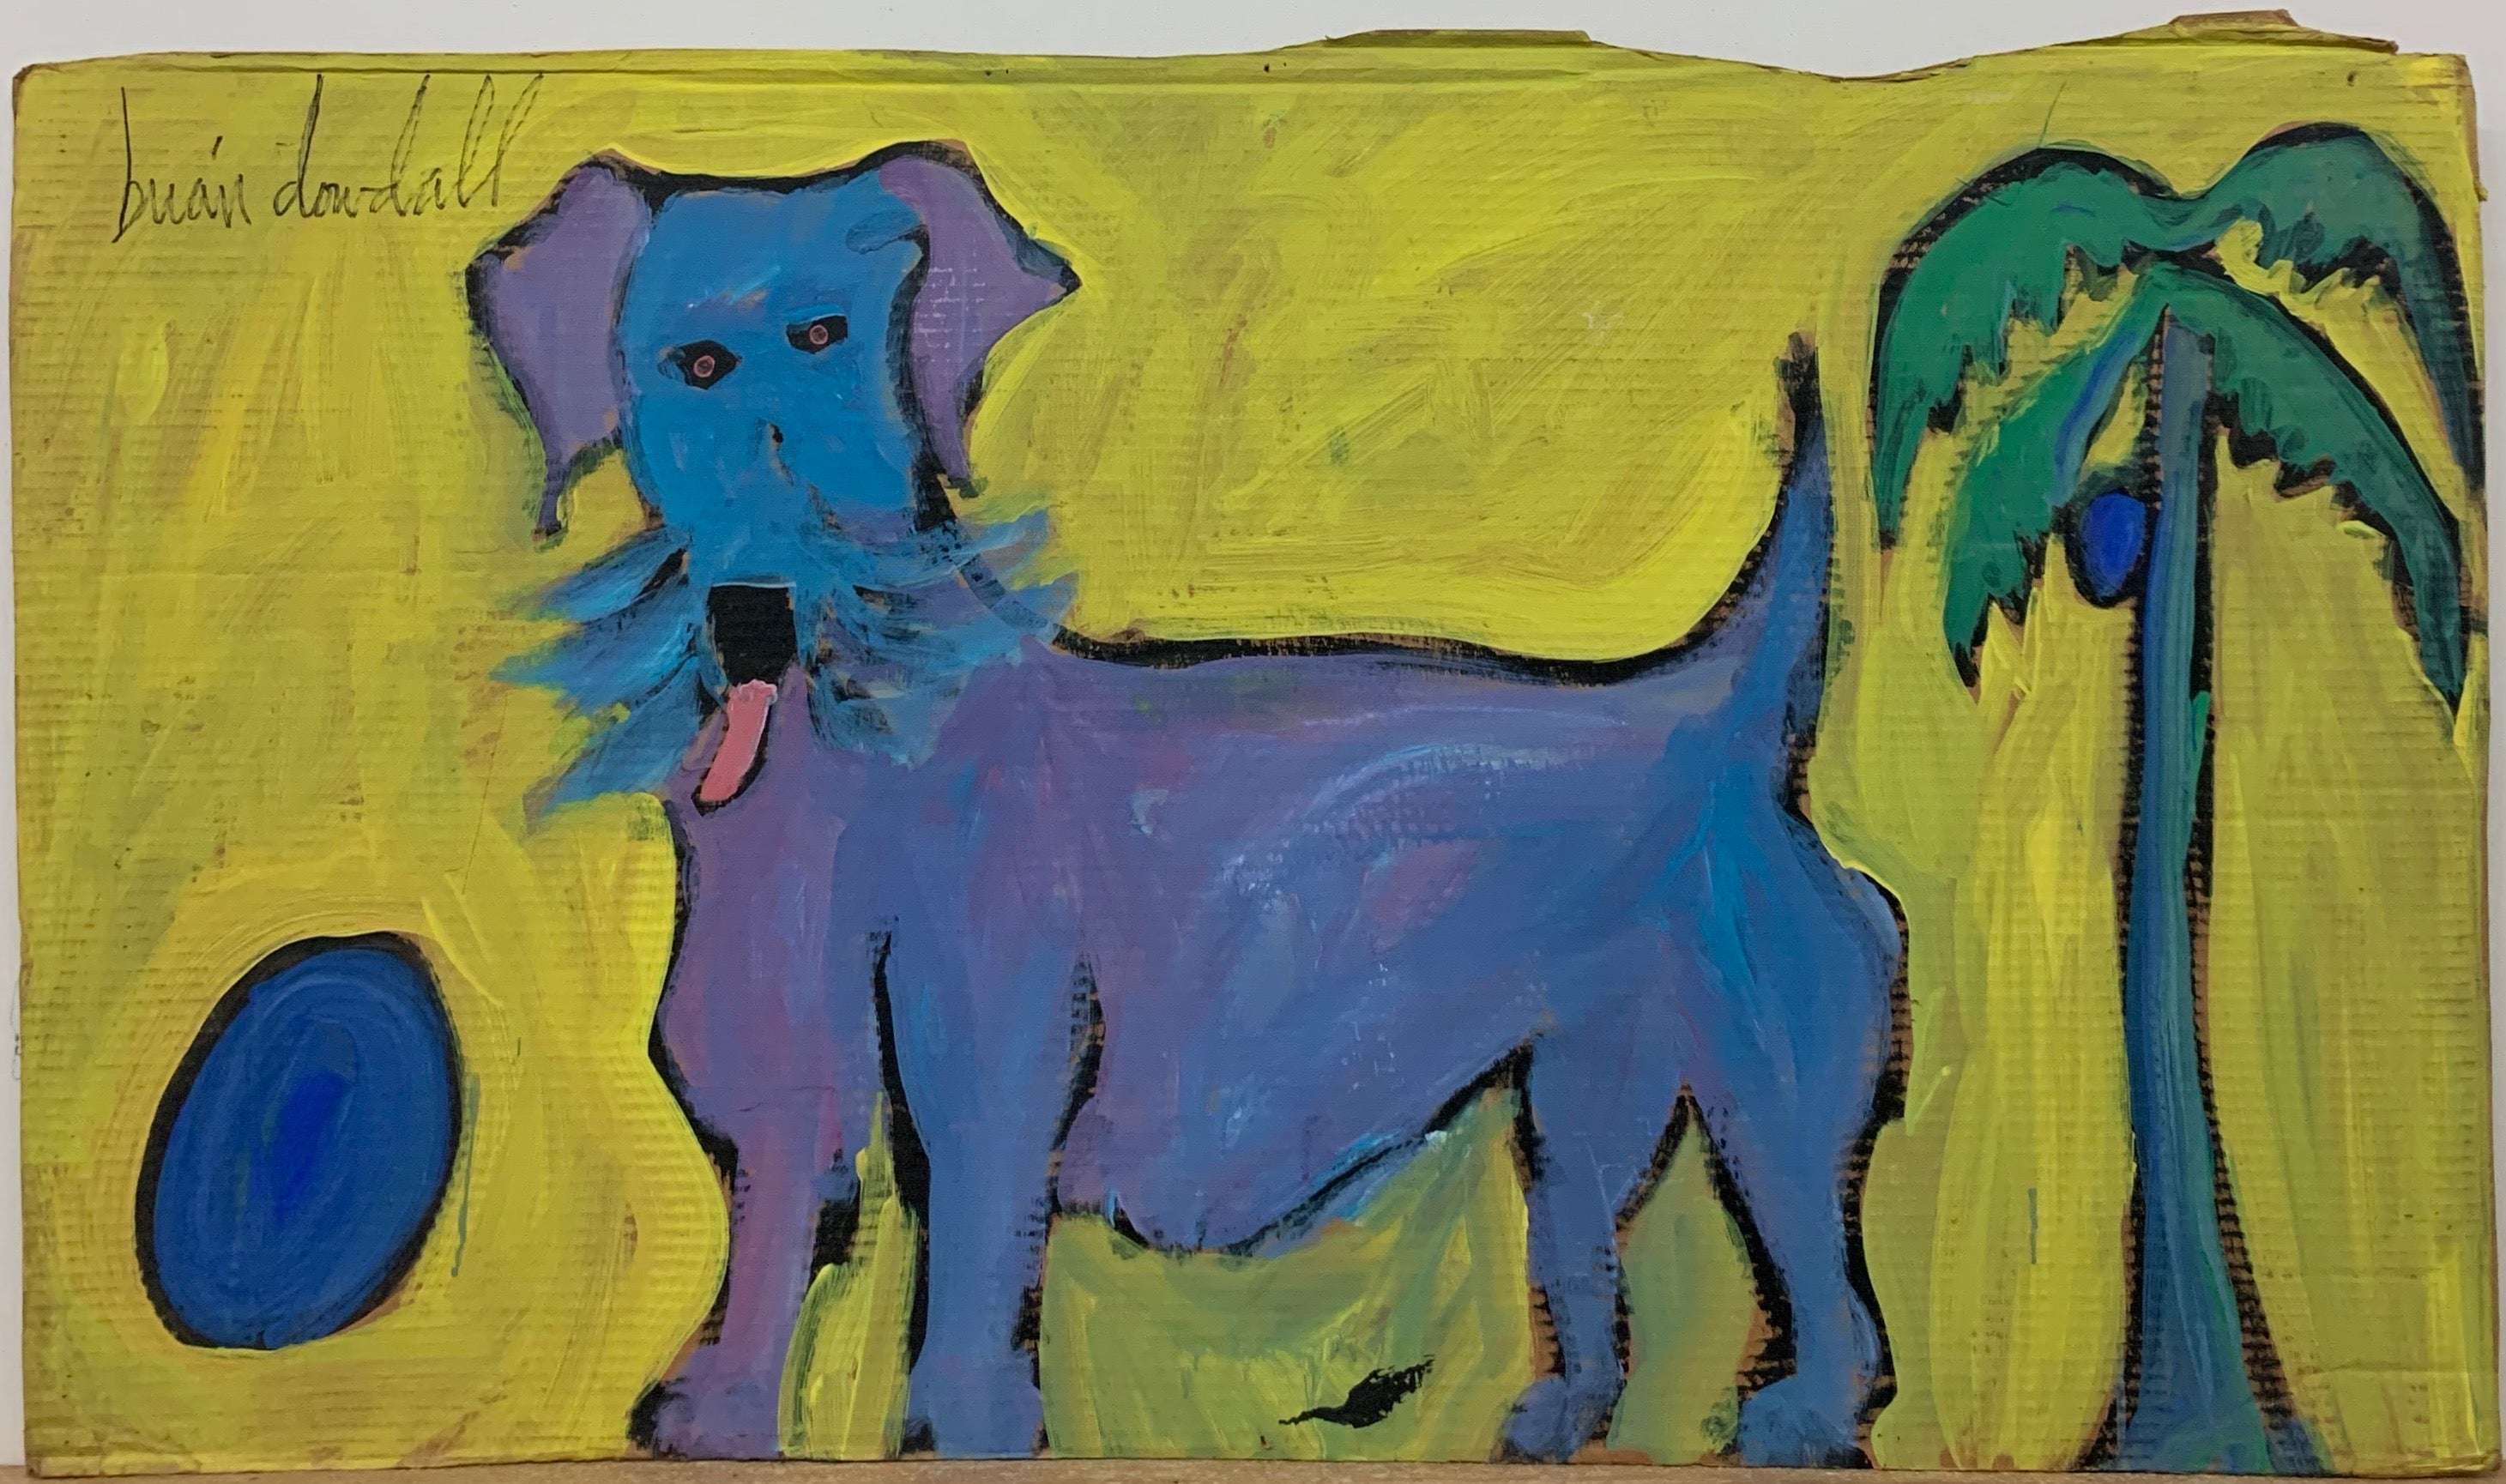 A Brian Dowdall painting of a blue dog playing frisbee in front of a palm tree with a coconut.